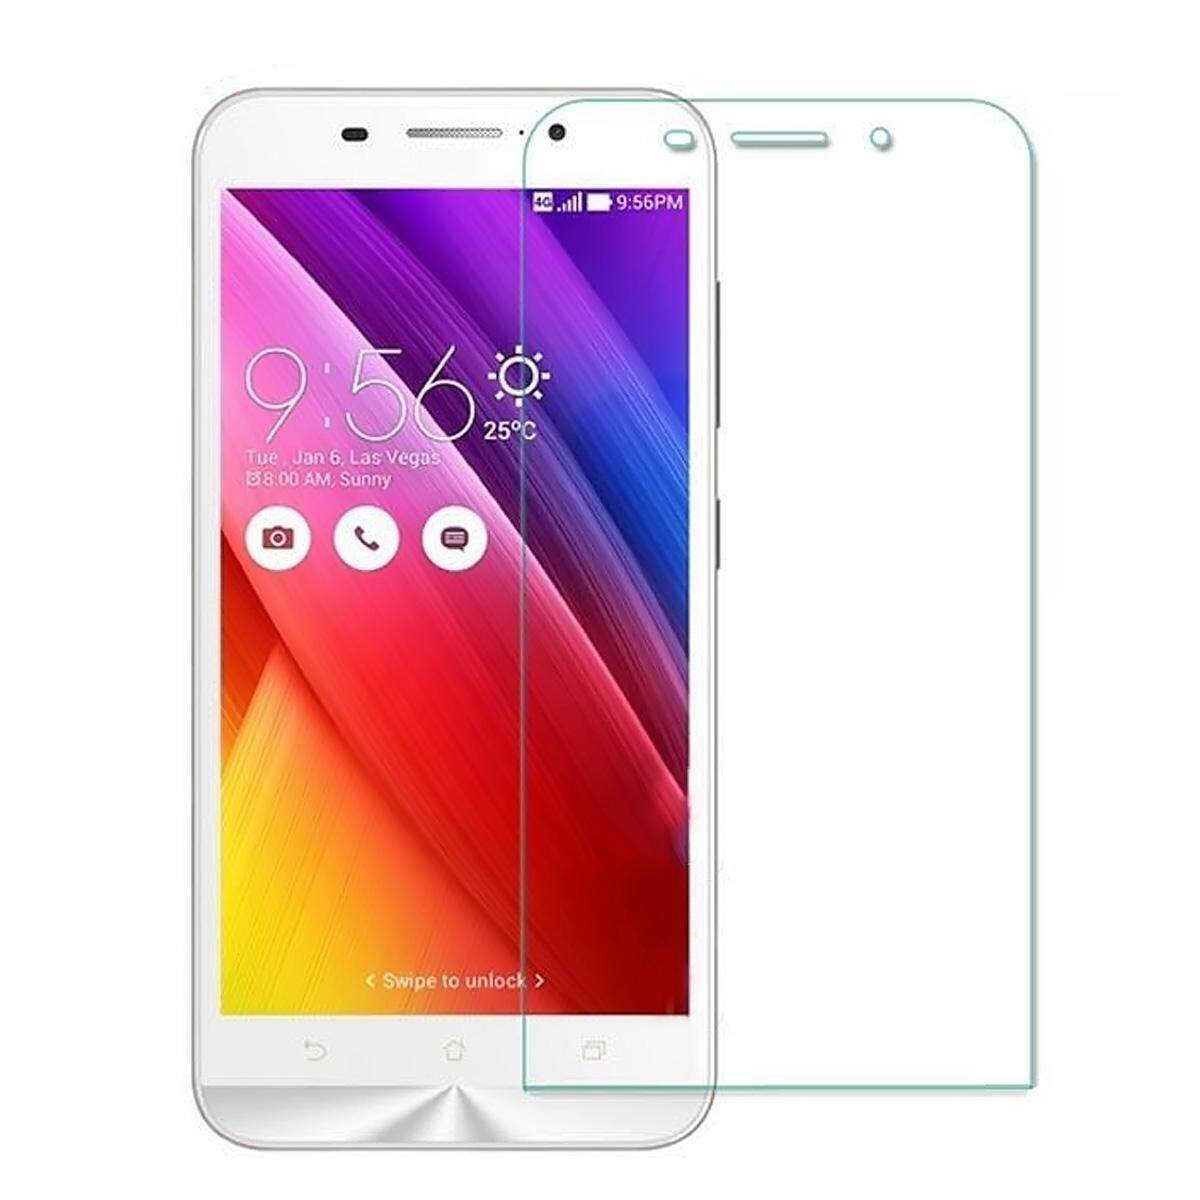 Features Asus Zenfone C Tempered Glass Screen Protector Hd Clear Dan Protection For 2 55 Cover Film Max Zc550kl Inch